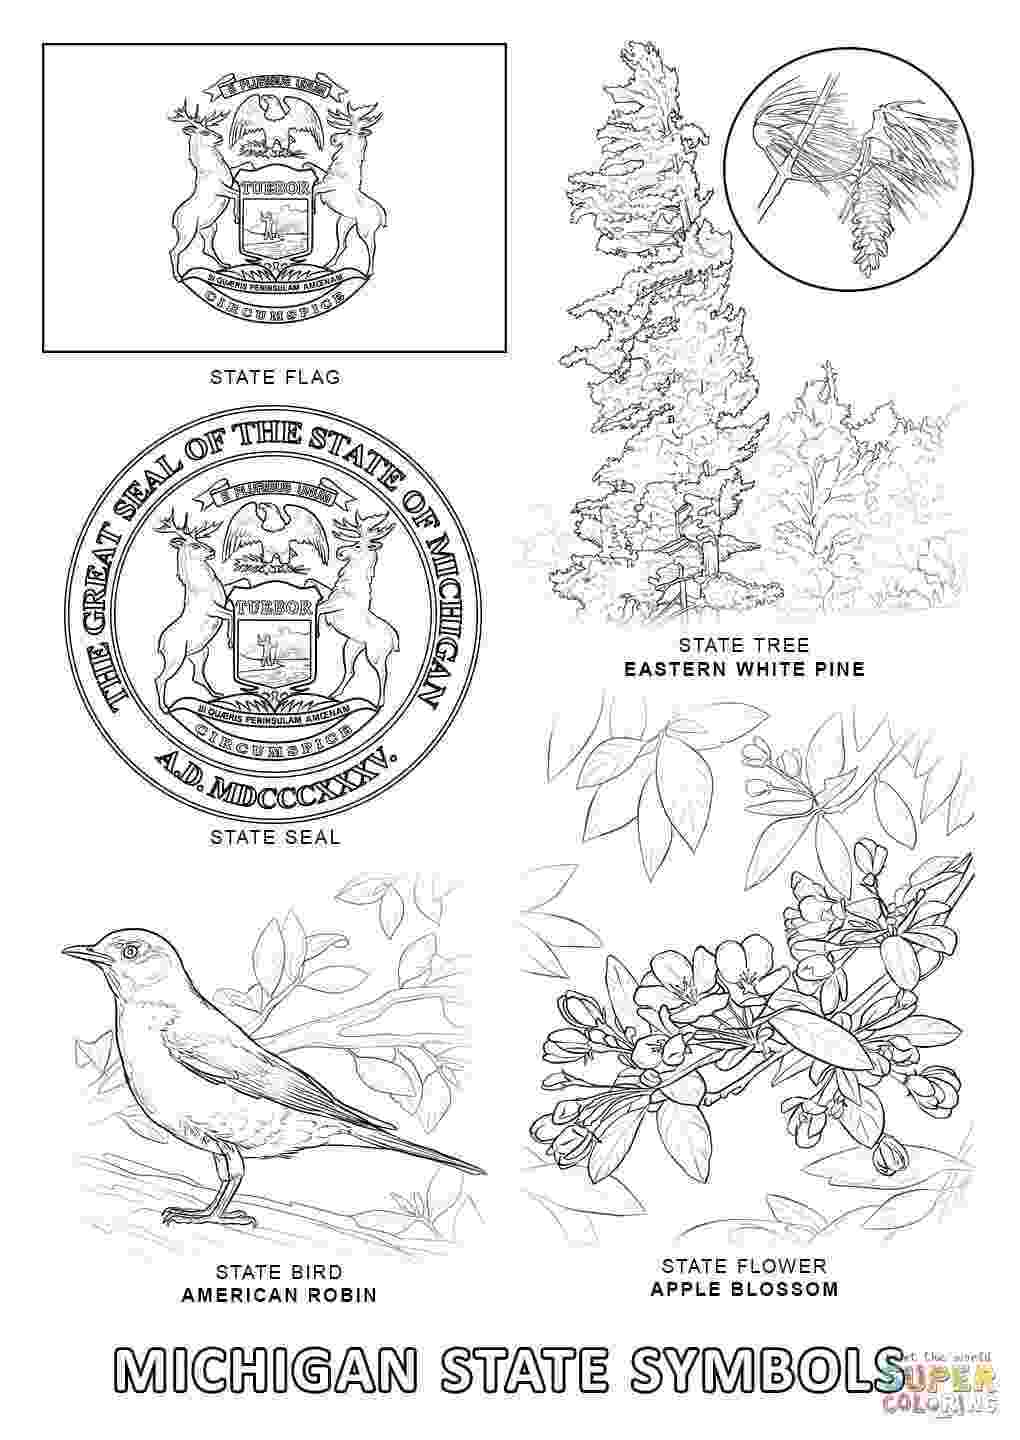 new mexico flag coloring page new mexico map coloring page free printable coloring pages new mexico coloring flag page